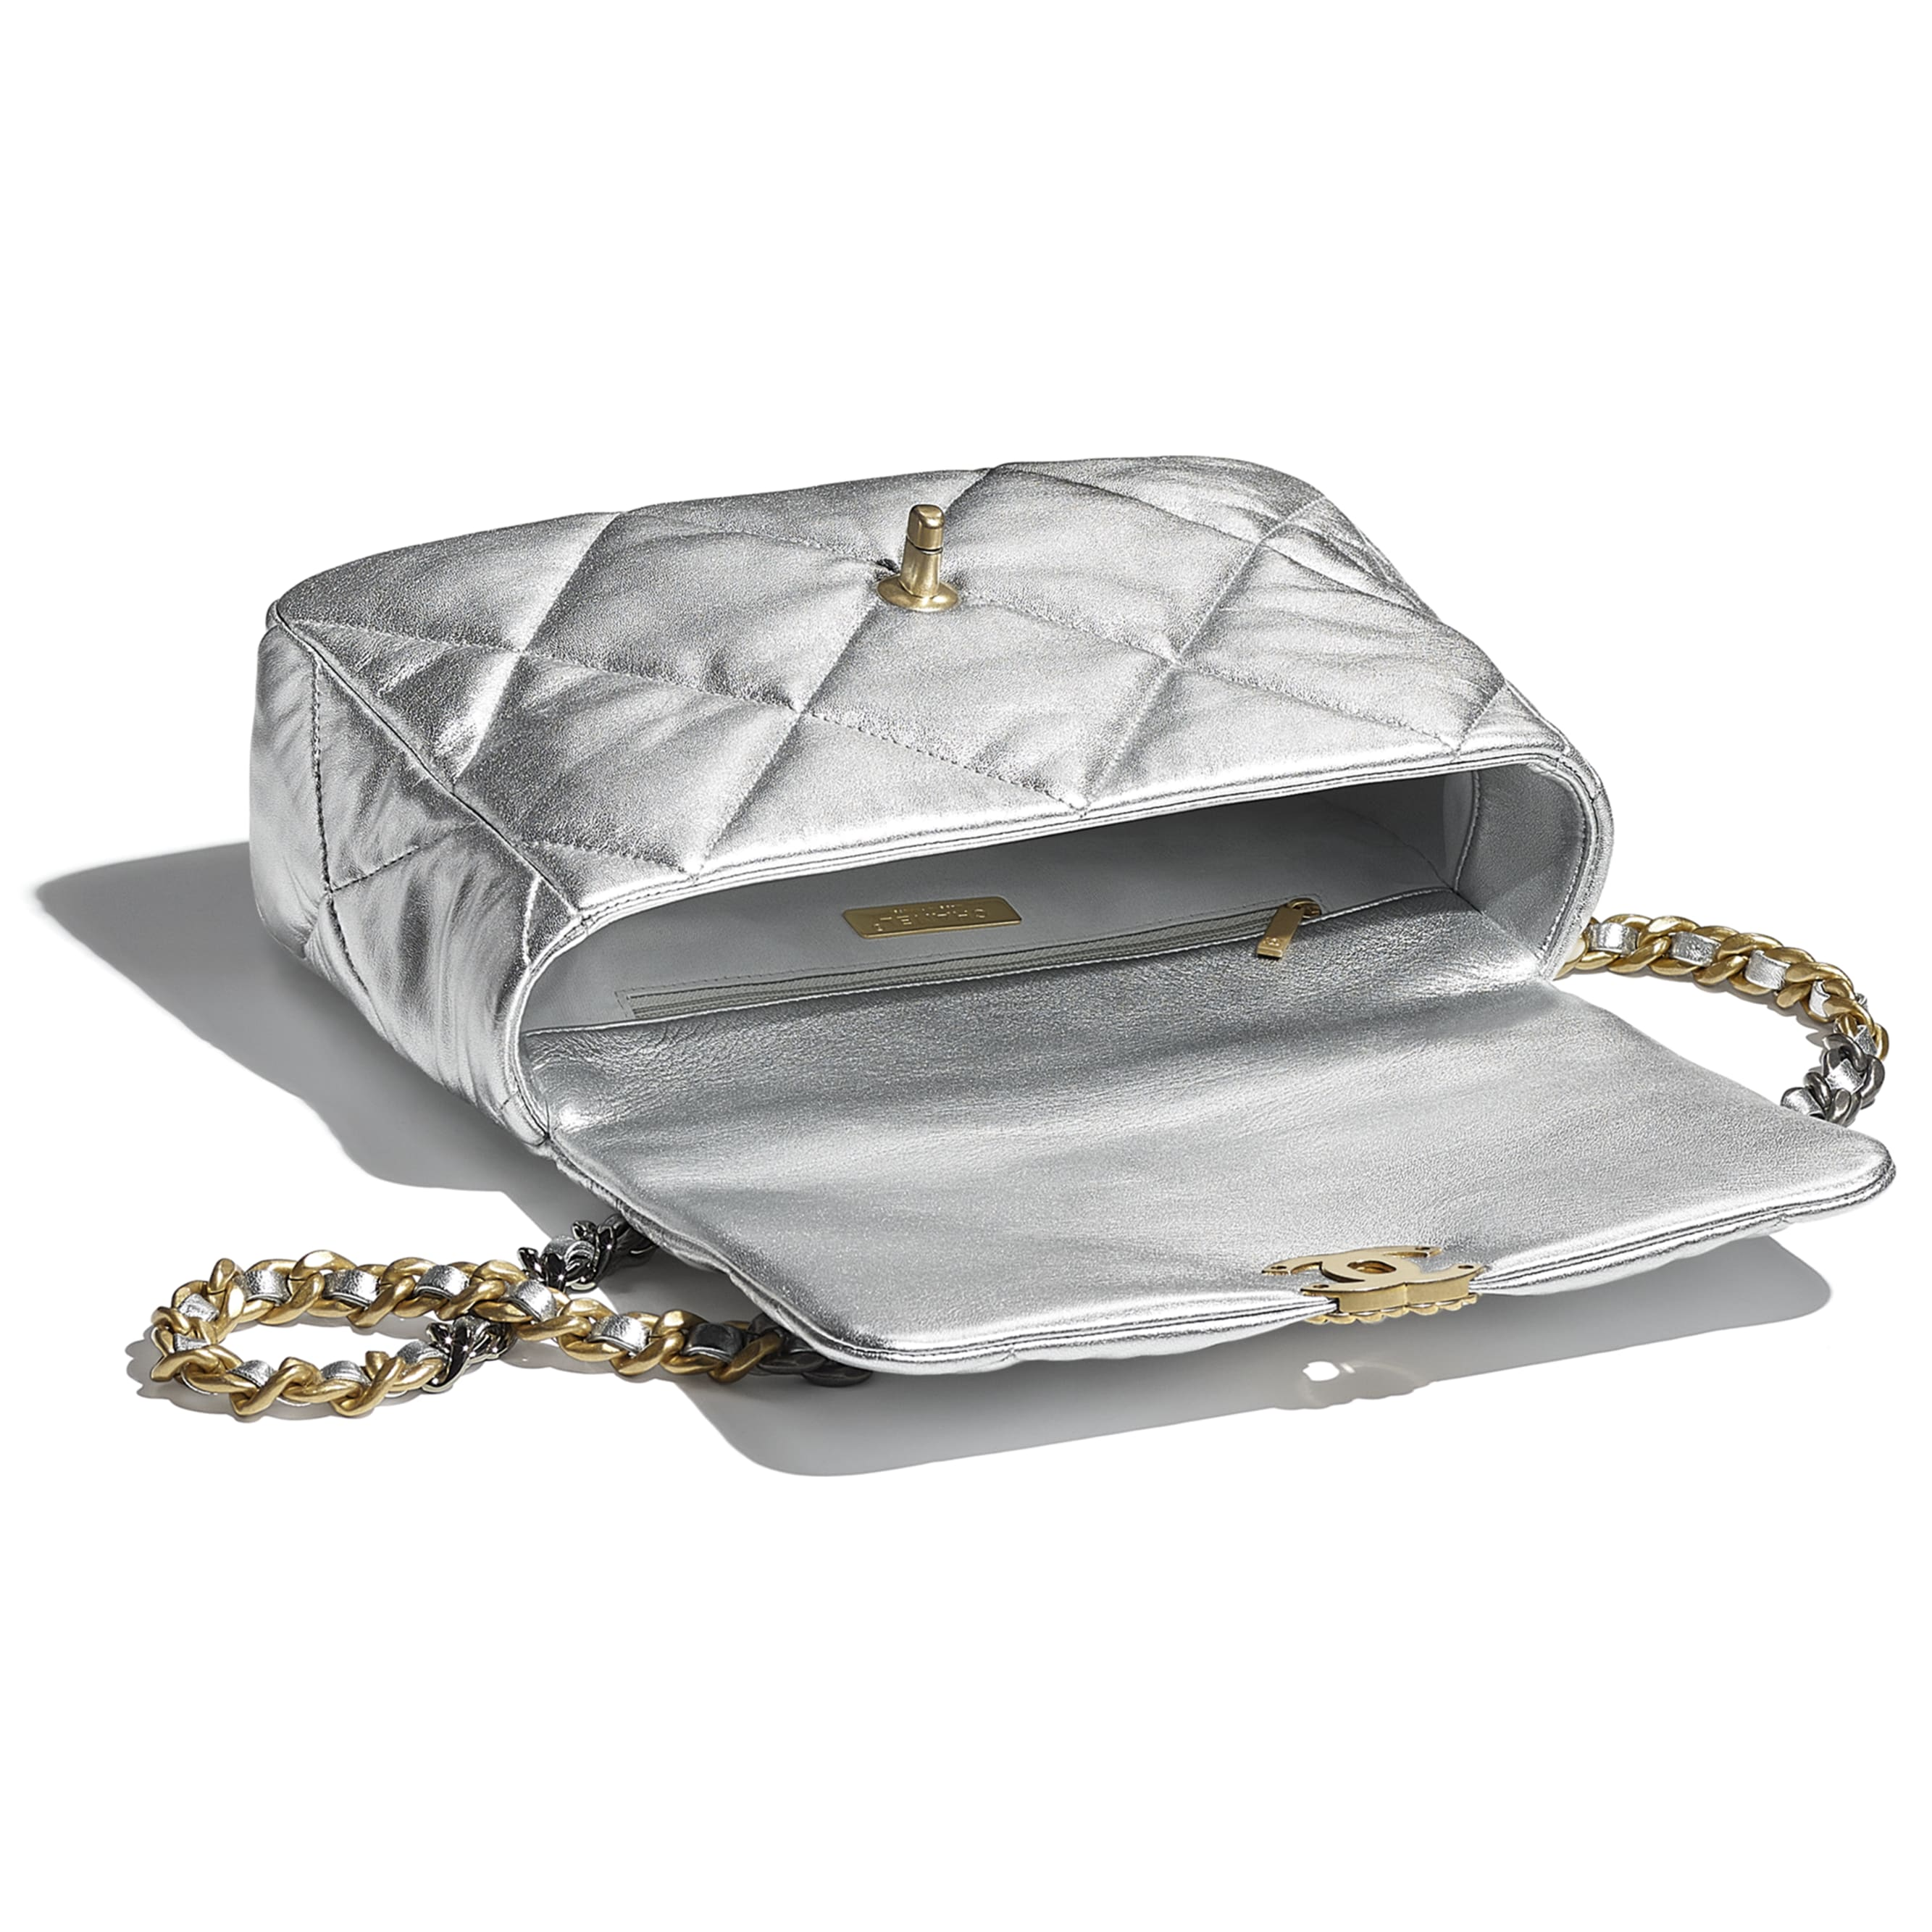 CHANEL 19 Large Flap Bag - Silver - Metallic Lambskin, Gold-Tone, Silver-Tone & Ruthenium-Finish Metal - CHANEL - Other view - see standard sized version